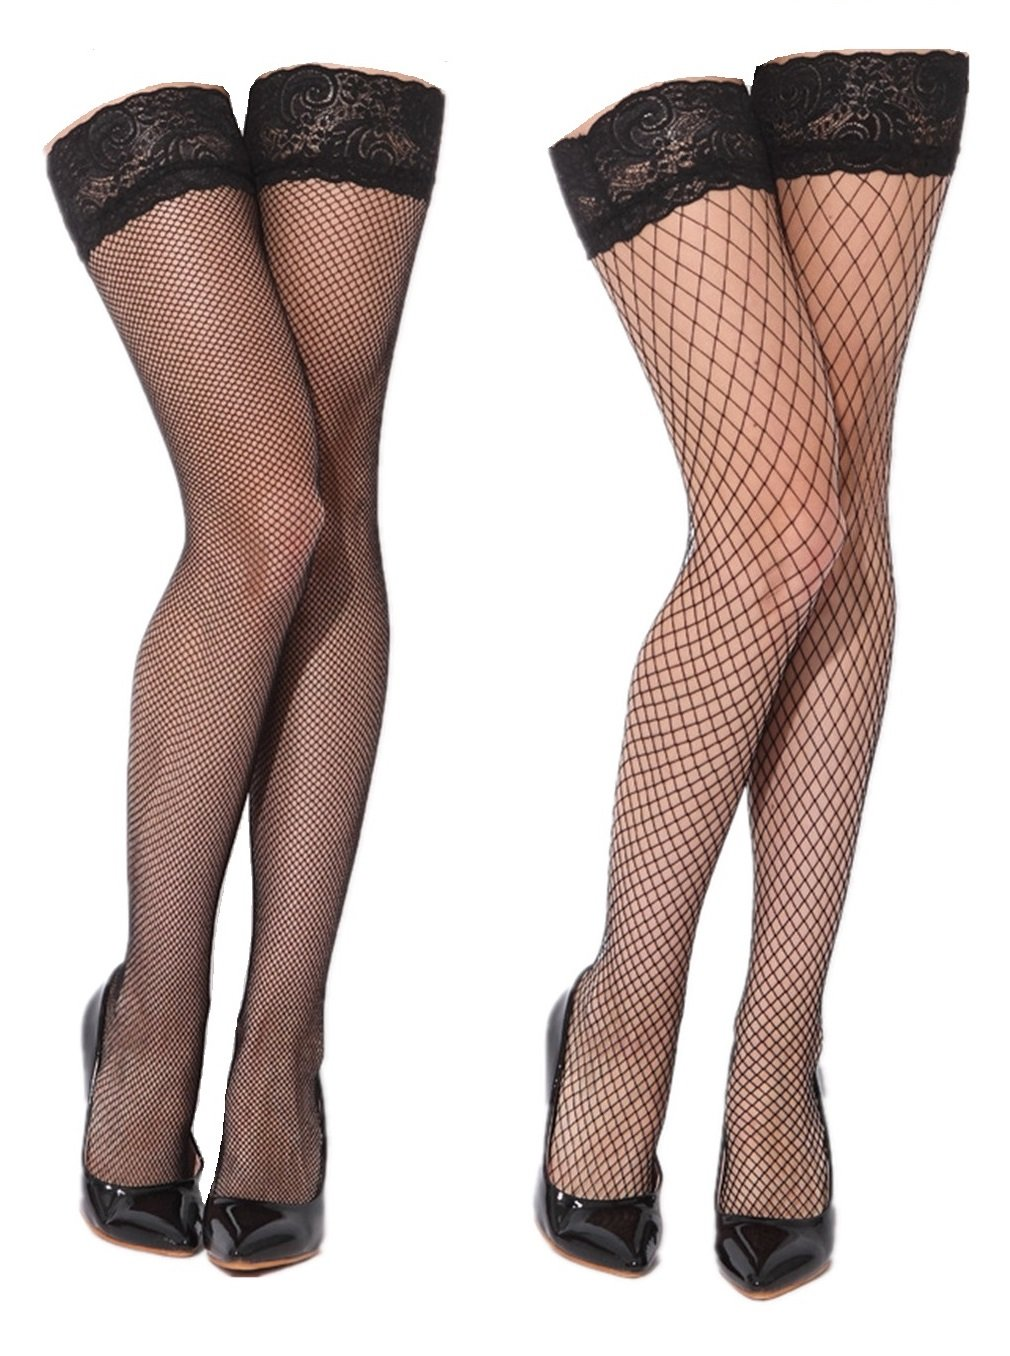 Womens Black Thigh High Fishnet Stockings with Silicone Lace Top 2 Pairs